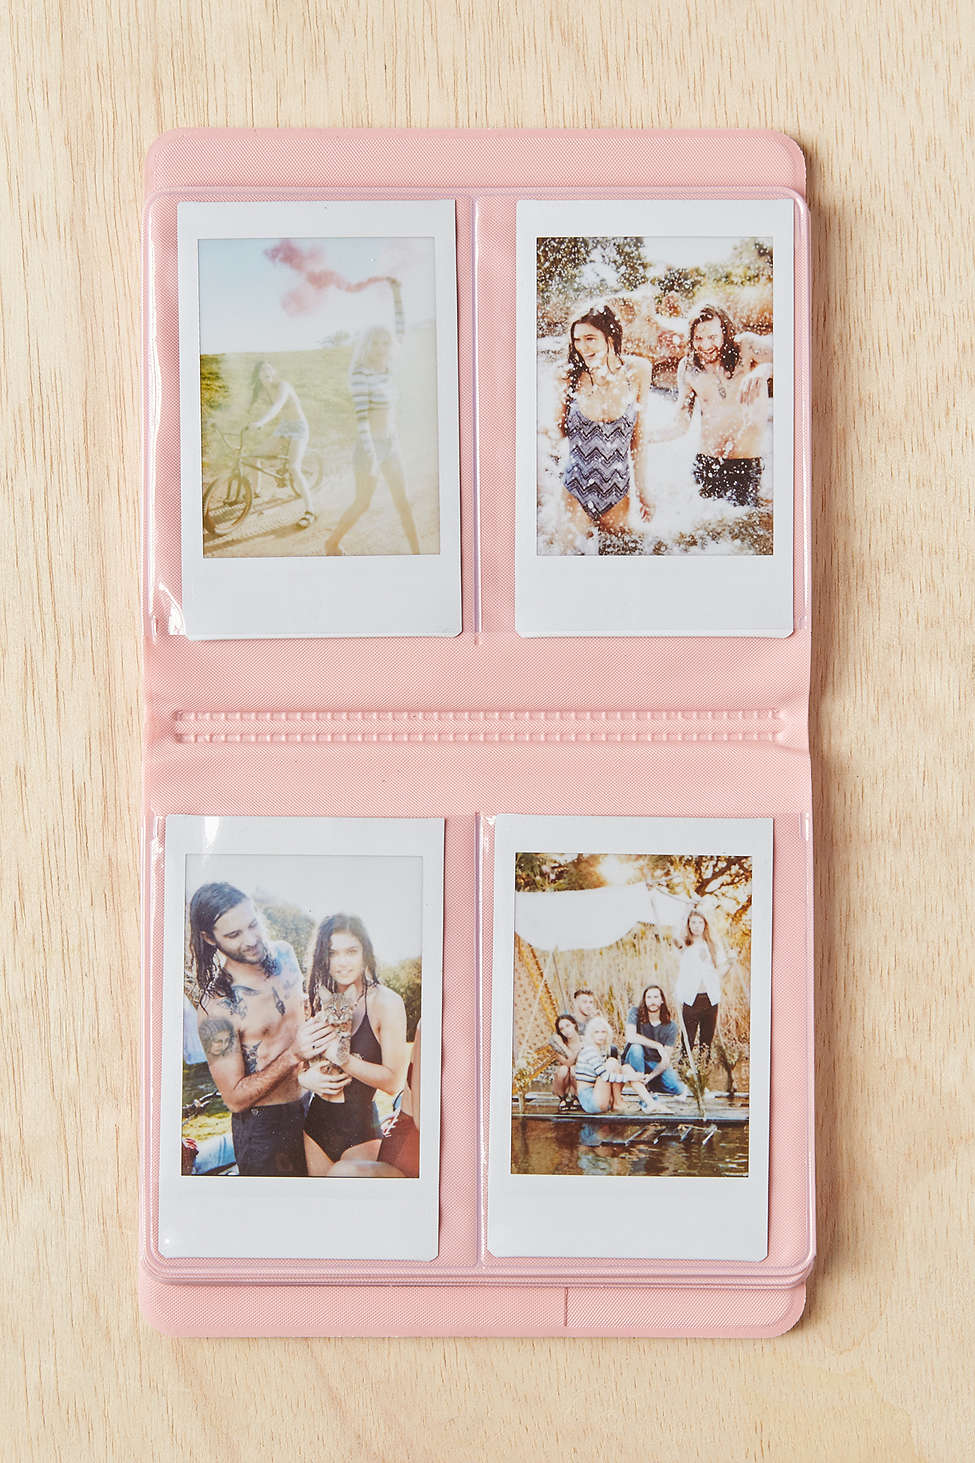 An Instax Photo Album from Urban Outfitters used for photograph storage is a creative Valentine's day gift for boyfriend or girlfriend.